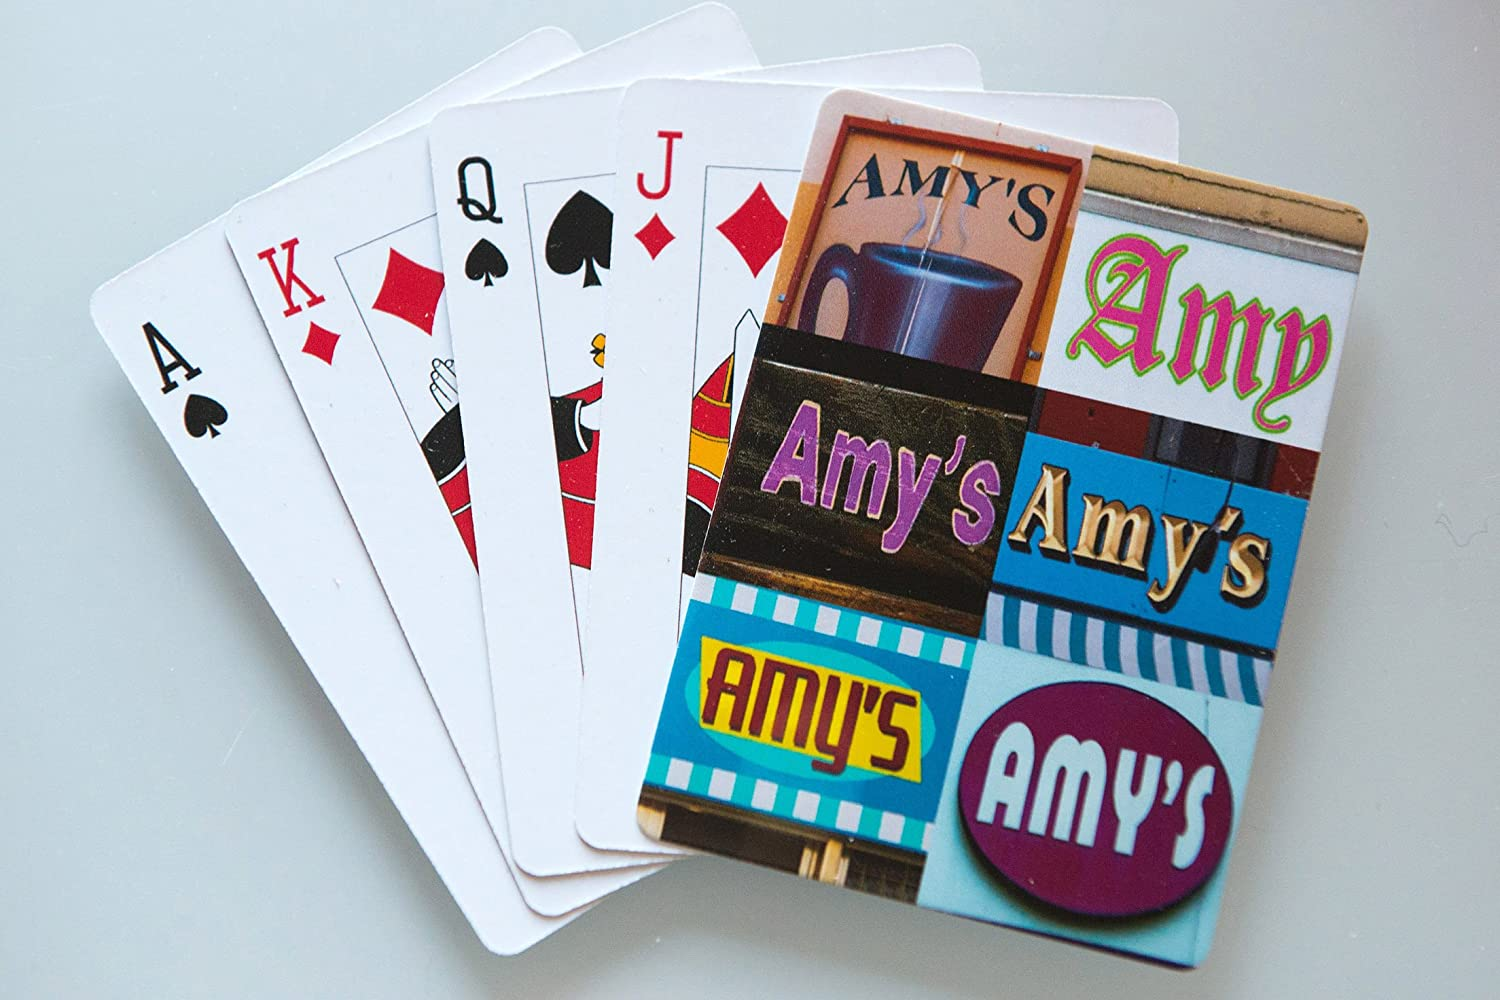 AMY Personalized Playing Cards featuring photos of actual signs SignYourName PC-AMYX